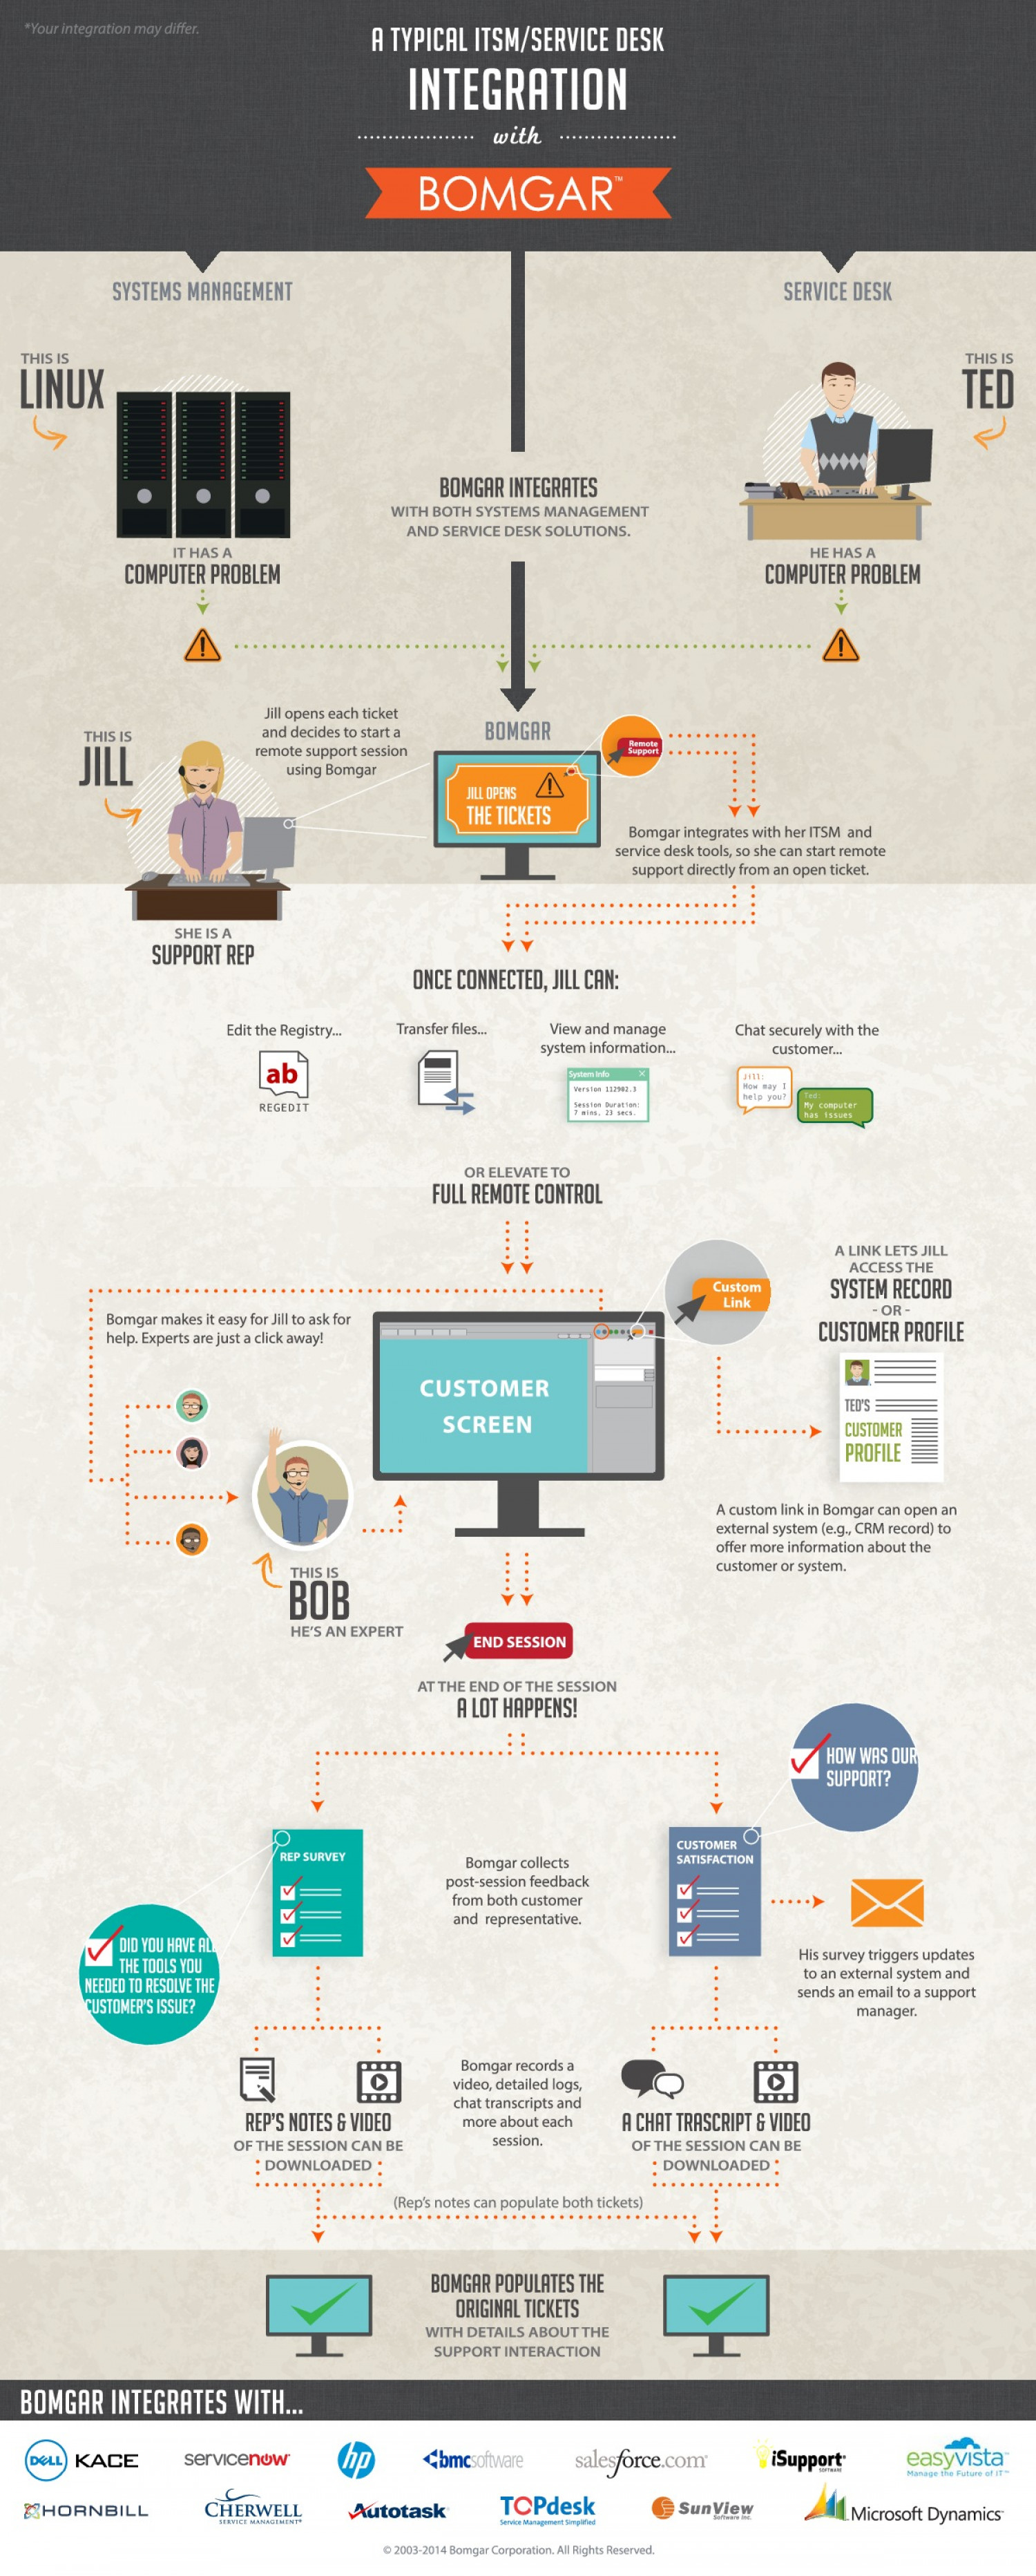 How Bomgar Integrates with ITSM/Service Desk Infographic